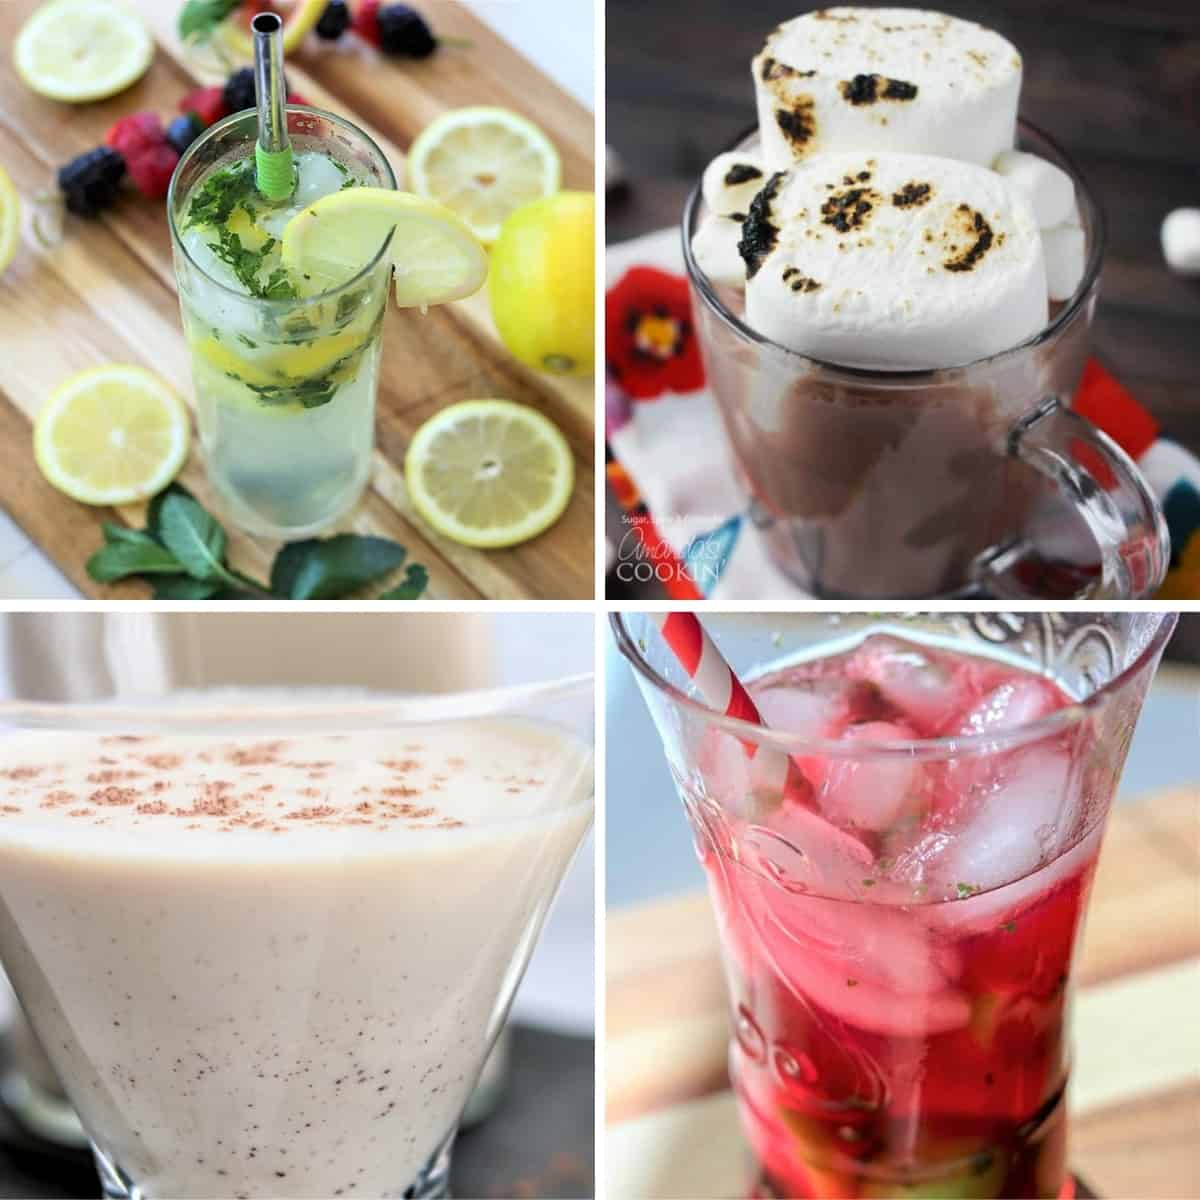 4 part image depicing cocktails such as irish cream, lemon mojitos, cranberry mojitos, and a smore martini